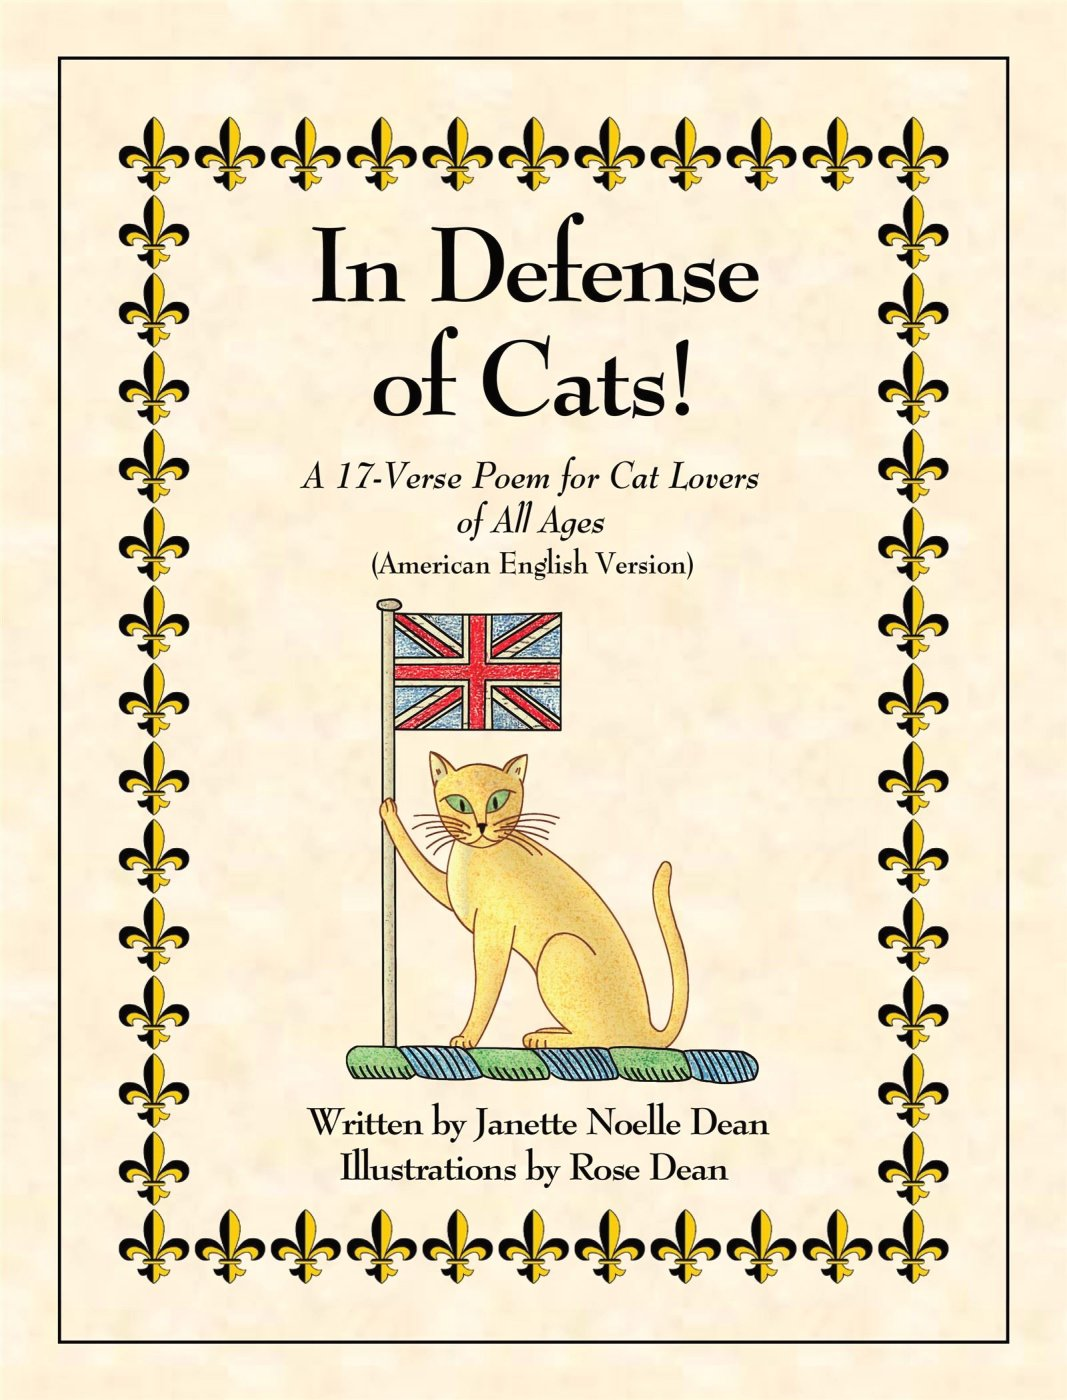 The brand new cat book about cats called In Defense of Cats! is for cat lovers of all ages and features the English cat Sir William, a cat defender and proponent, named in honor of William Shakespeare. See more at http://www.indefenseofcats.com